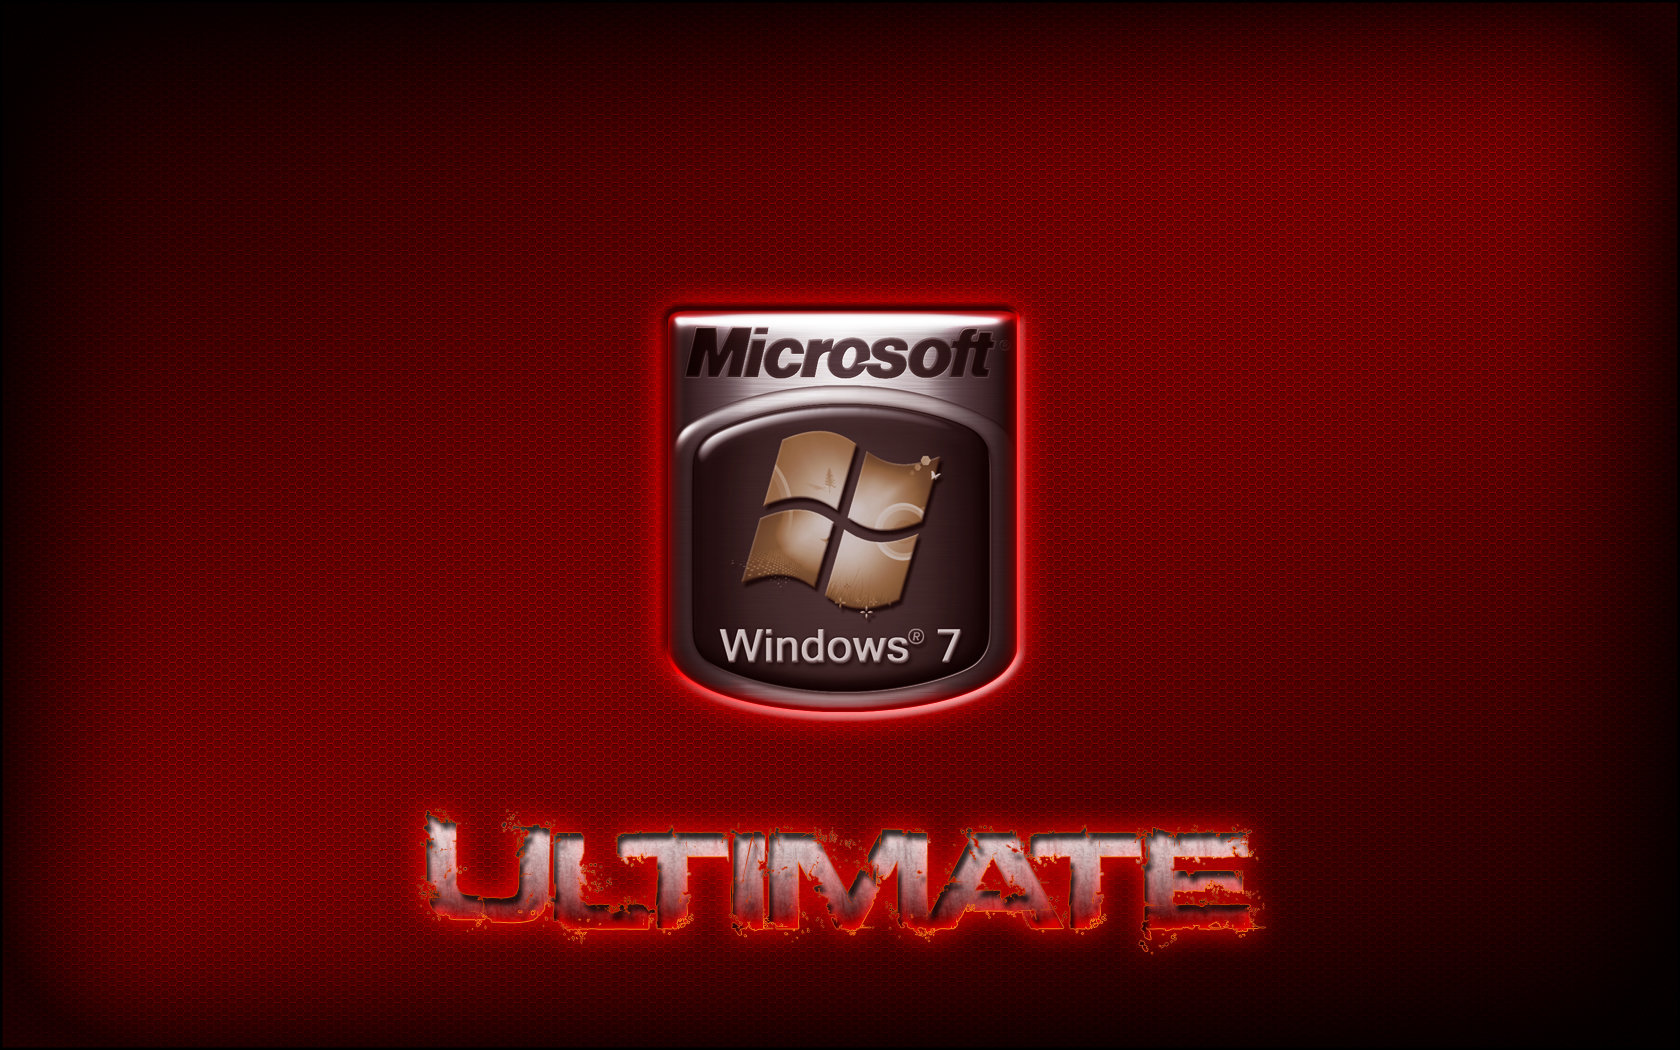 Windows 7 Ultimate wallpapers HD for desktop backgrounds 1680x1050